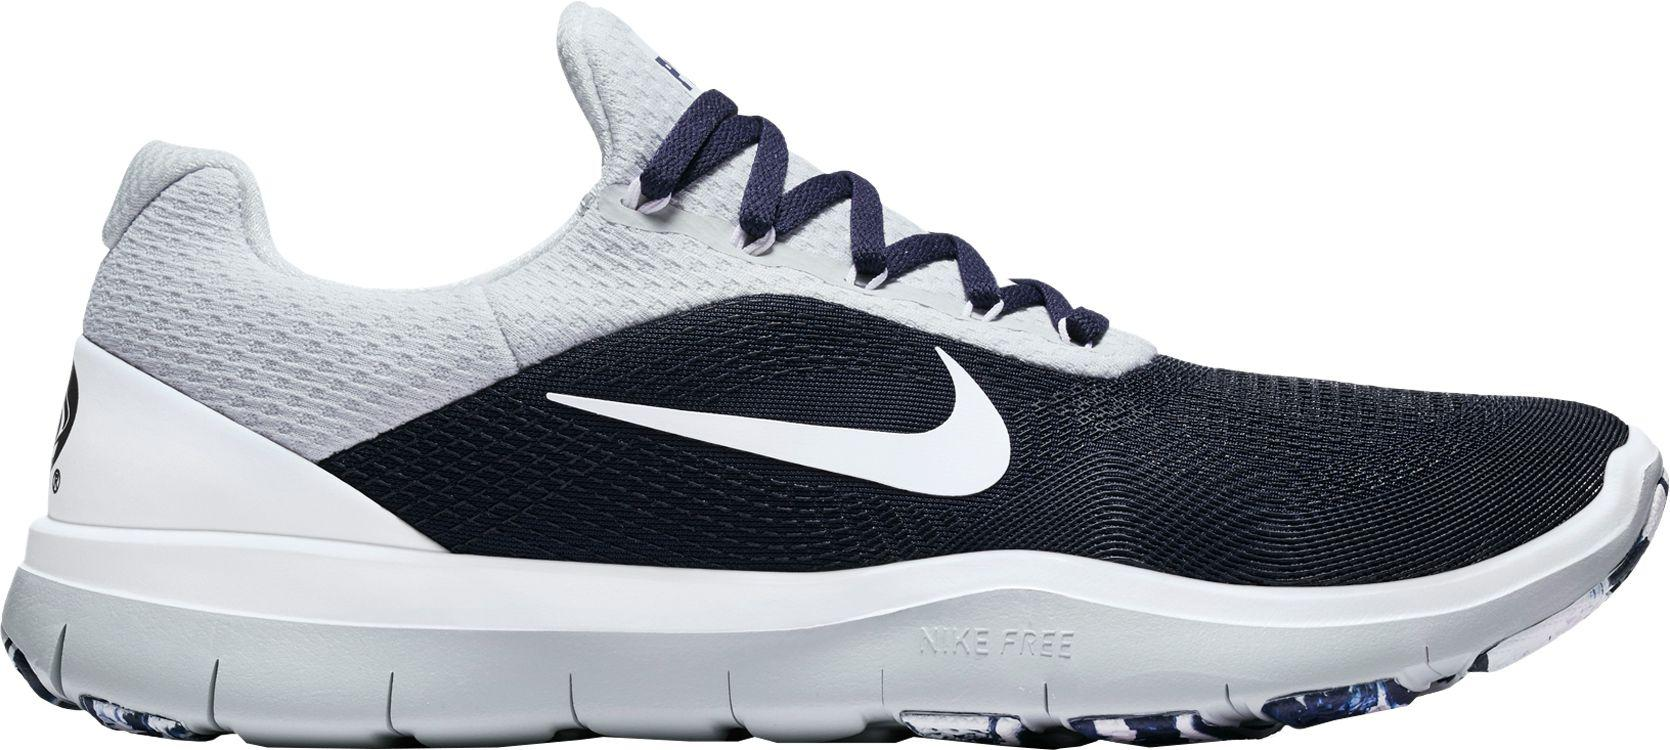 4f21431564 Nike Free Trainer V7 Week Zero Penn State Edition Training Shoes in ...